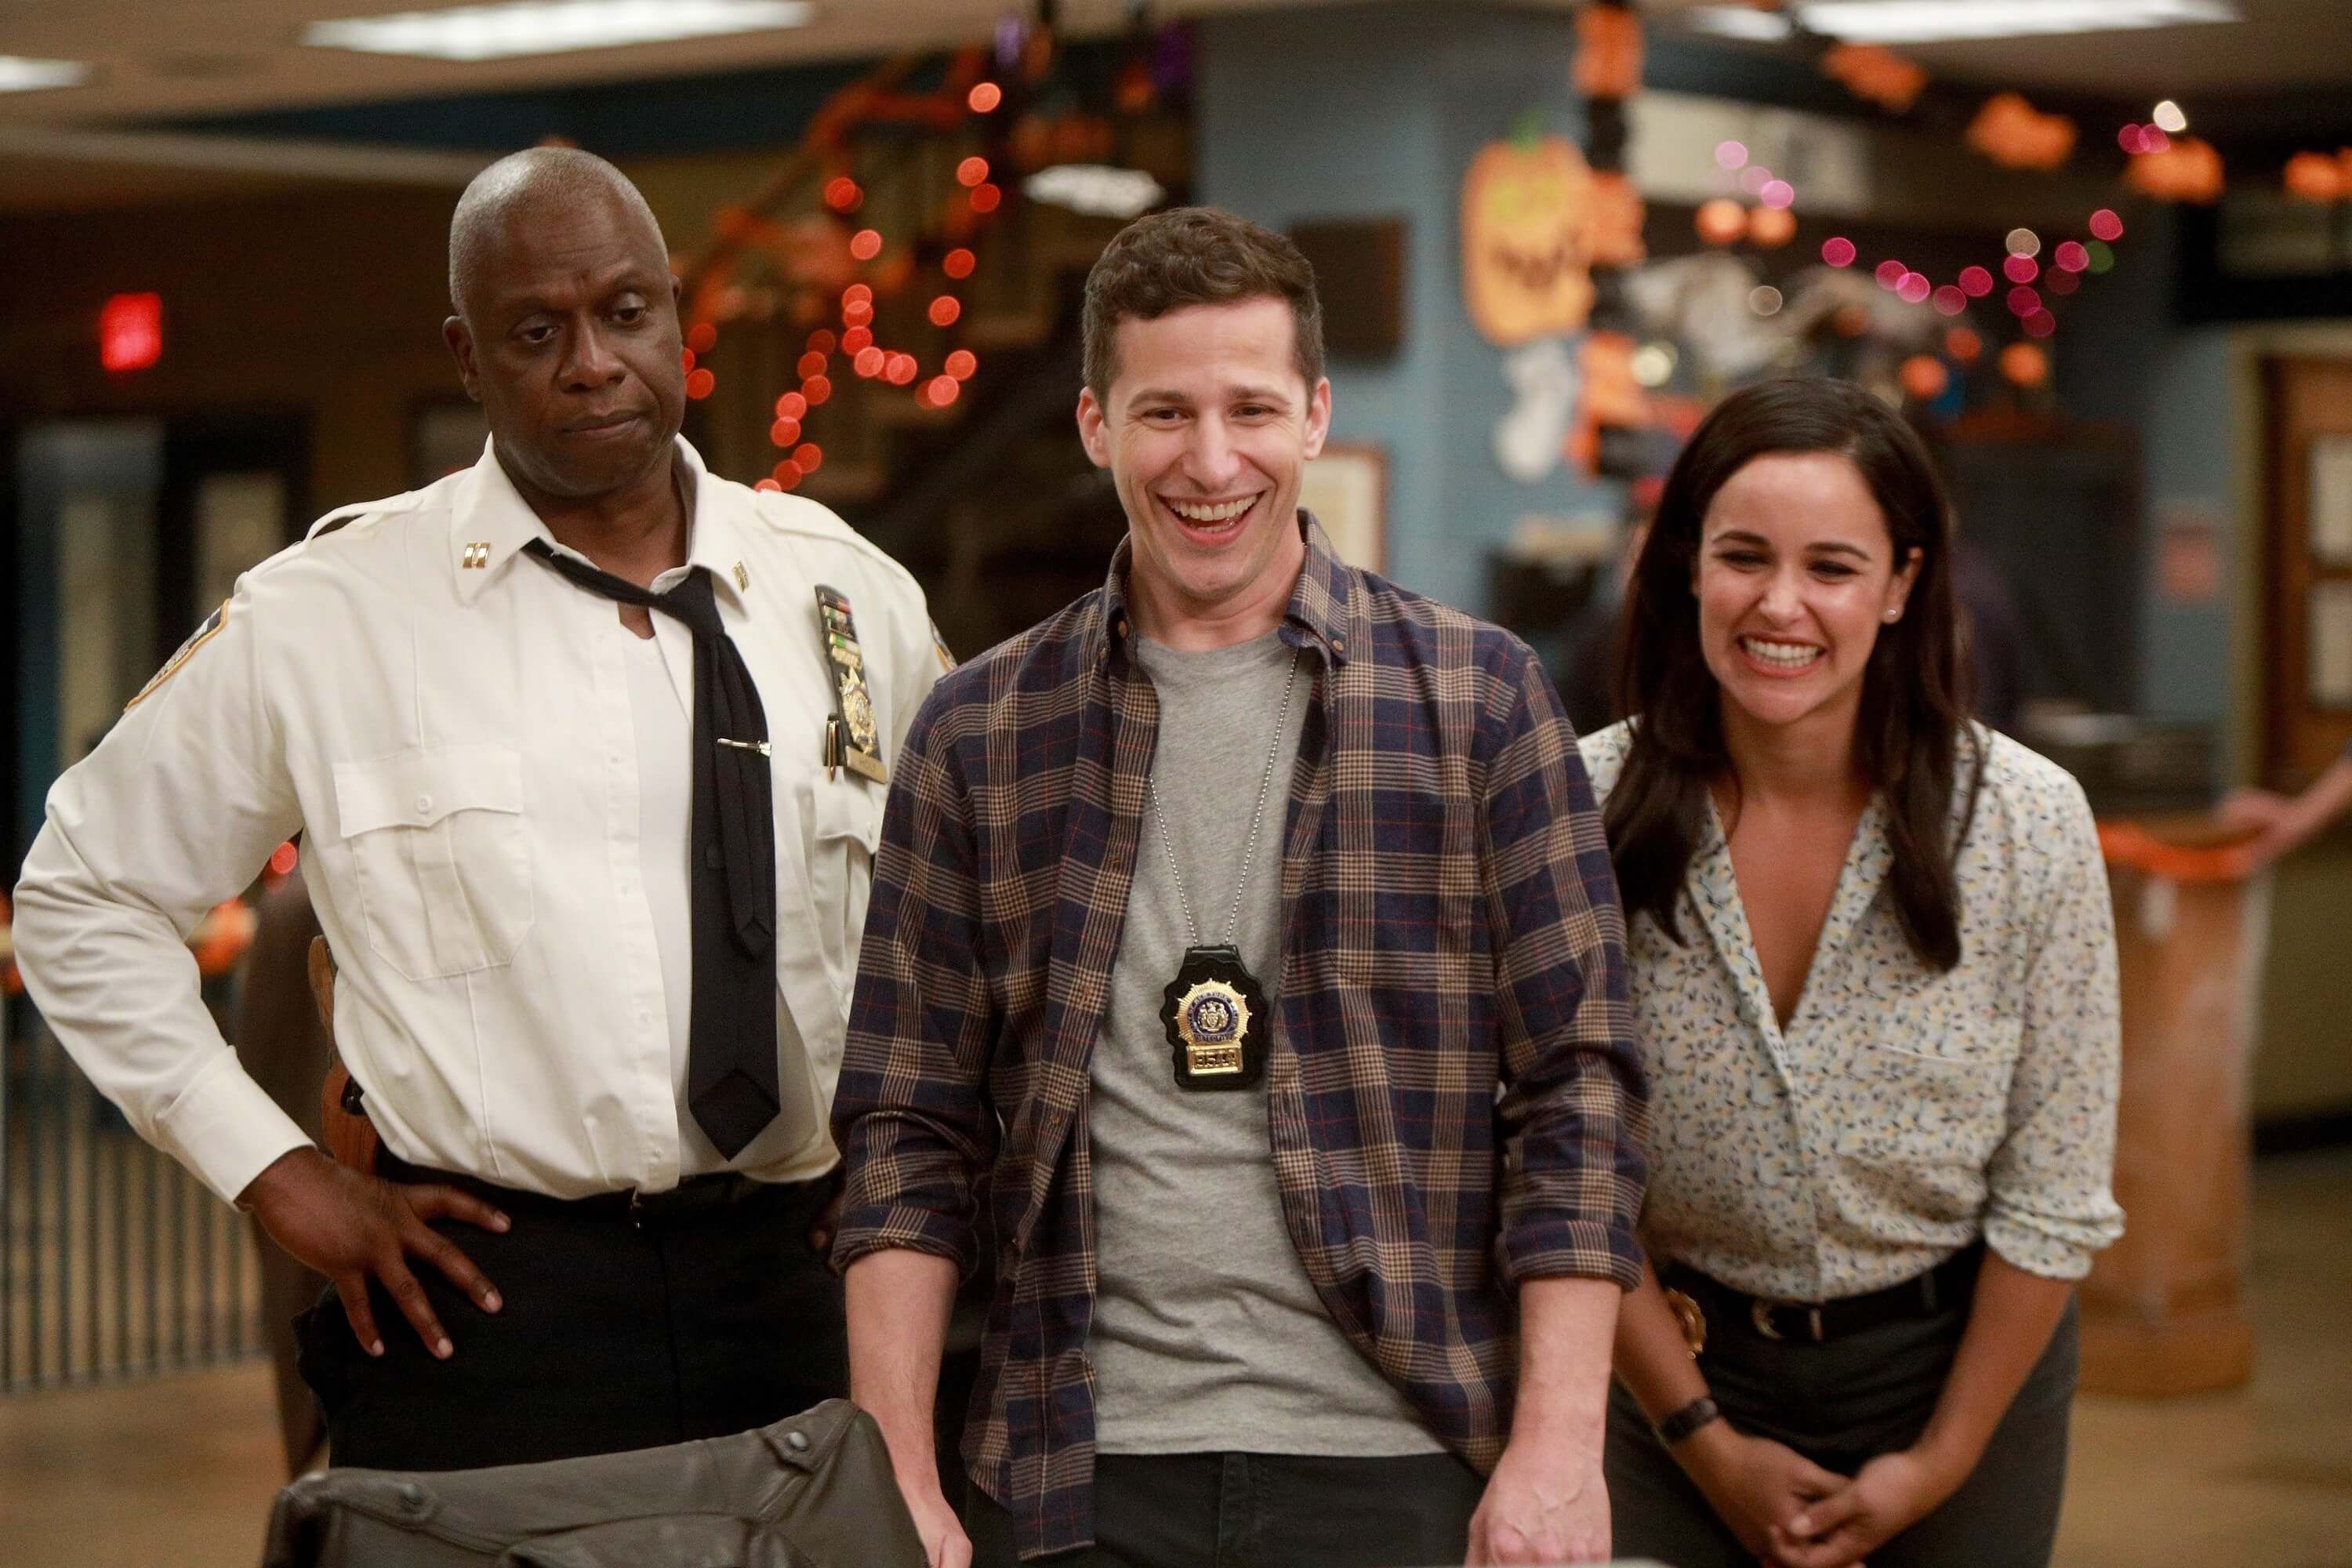 Image may contain: Brooklyn Nine-Nine, Brooklyn 99, new series, Season 5, Netflix, cast, Pants, Apparel, Clothing, Shirt, Human, Person